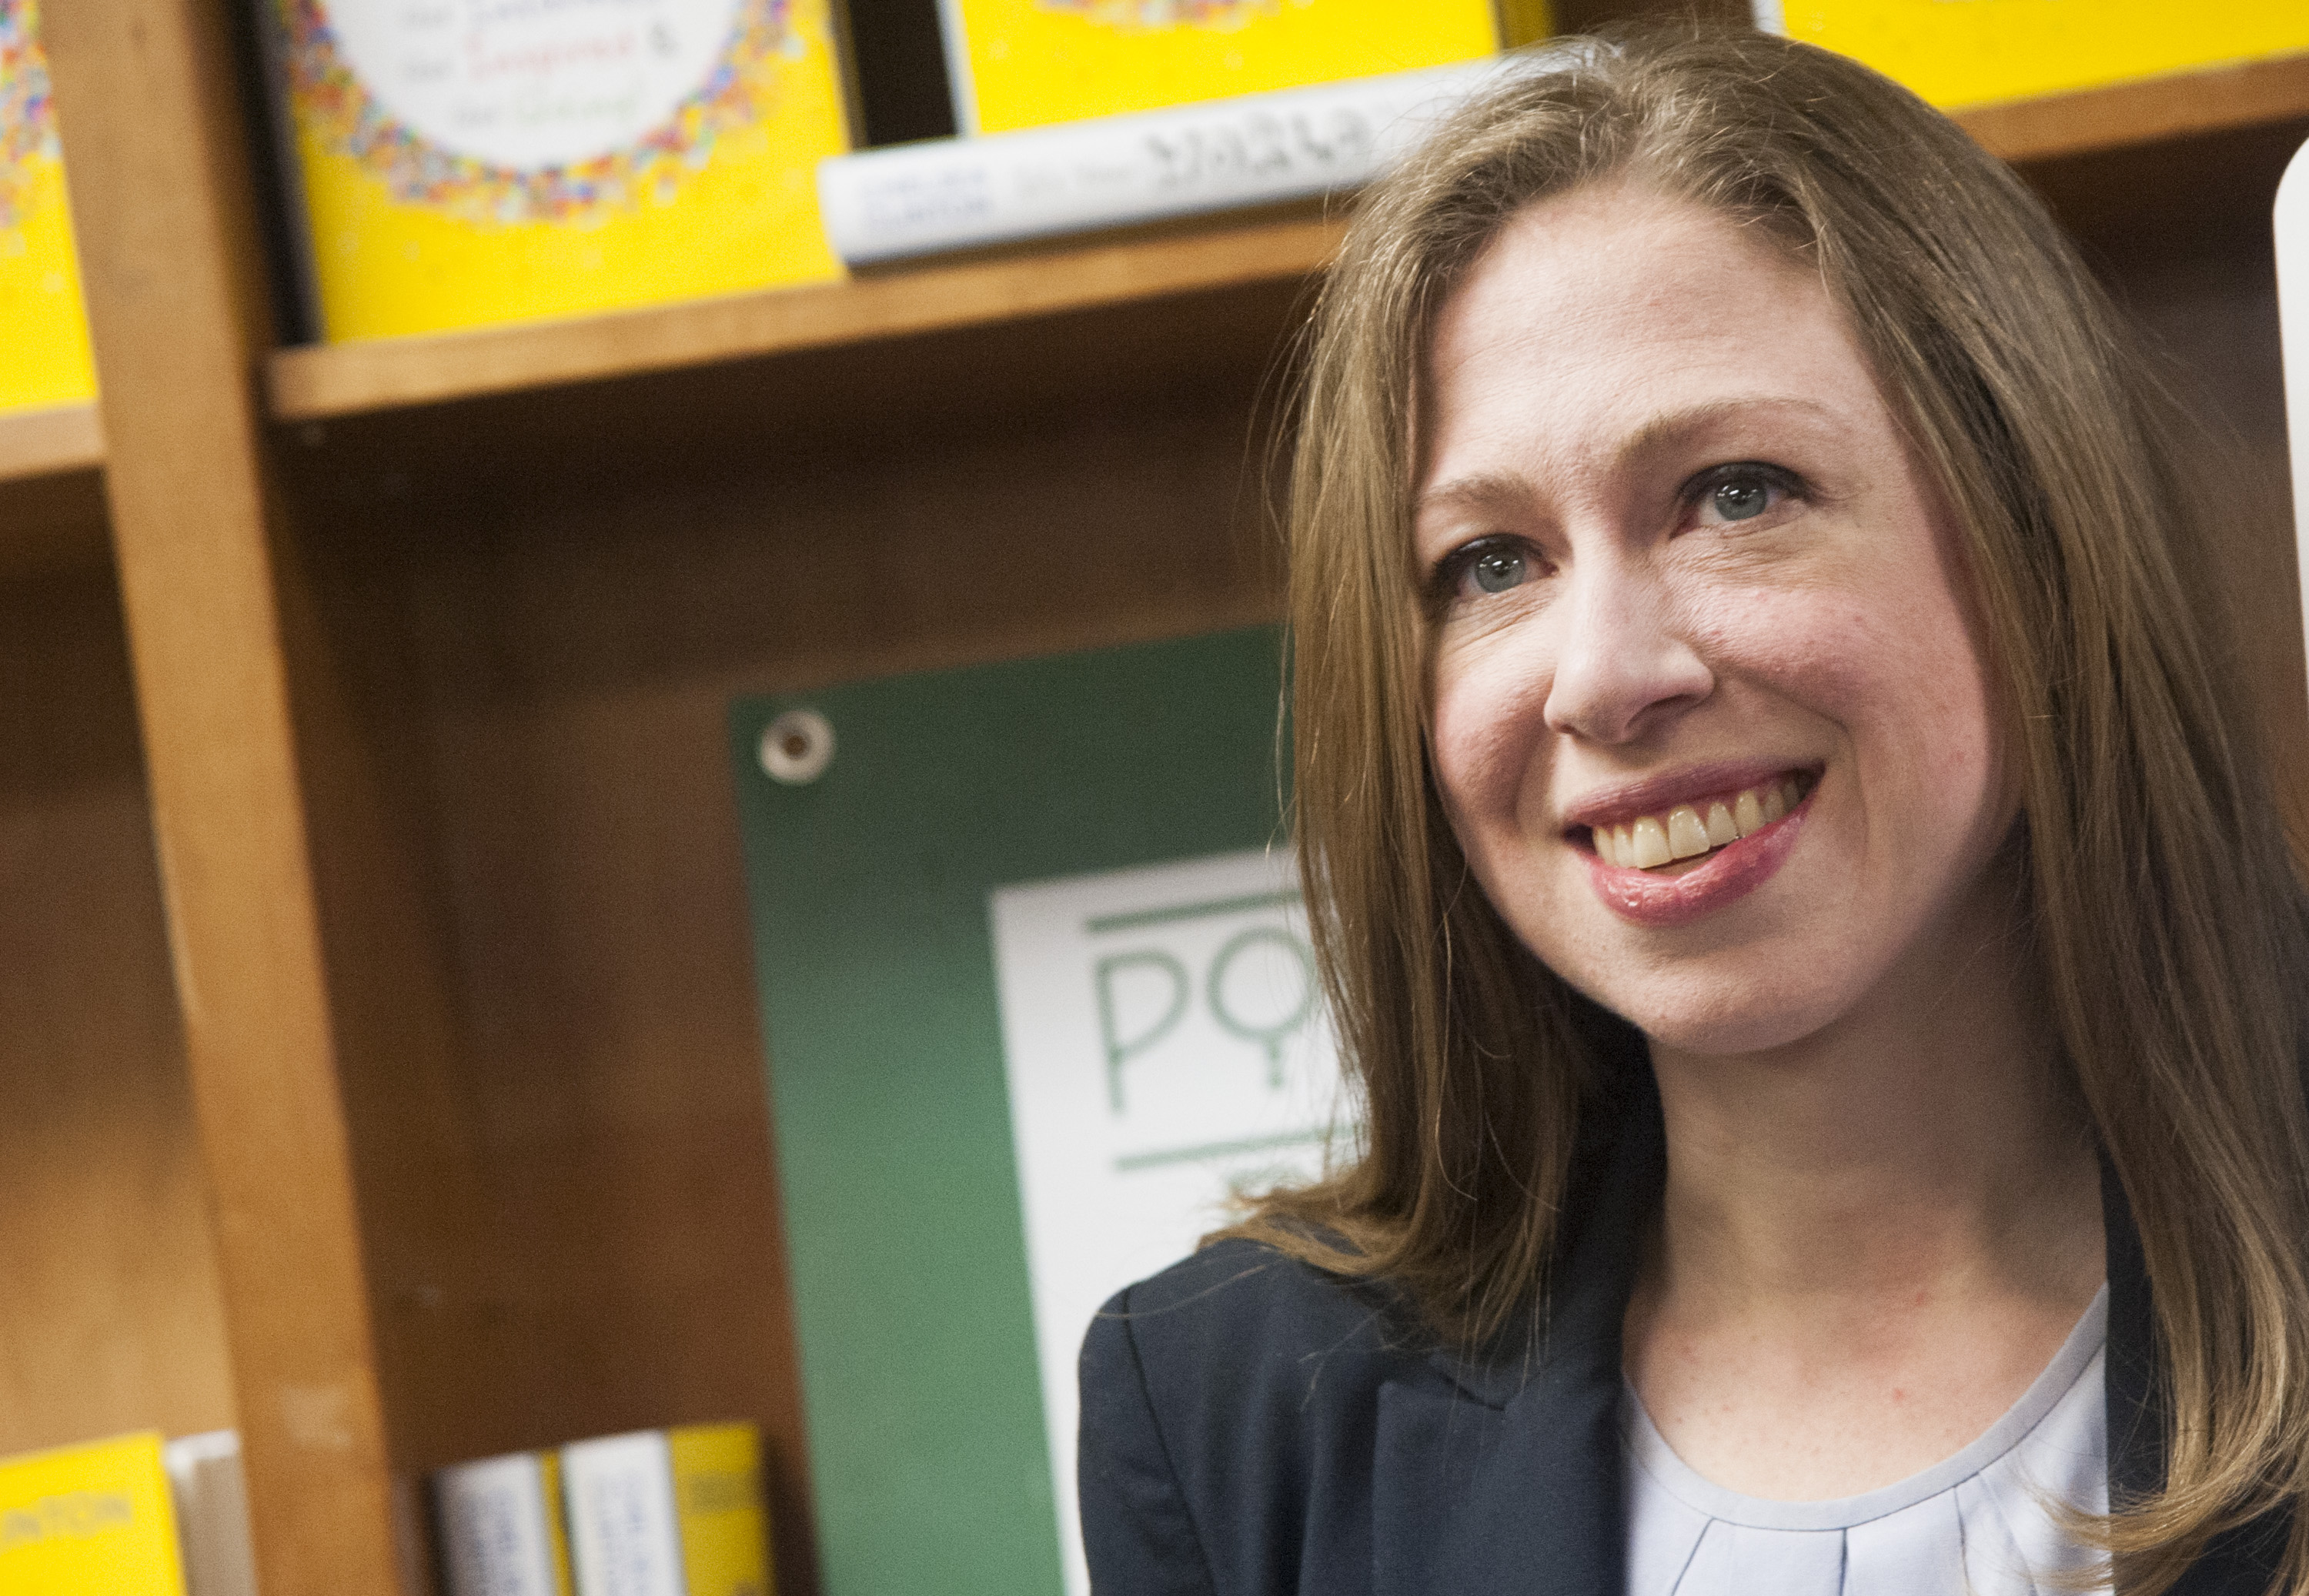 Chelsea Clinton Signs Copies Of Her New Book  It's Your World  at Politics & Prose Bookstore on Sept. 24, 2015 in Washington, DC.